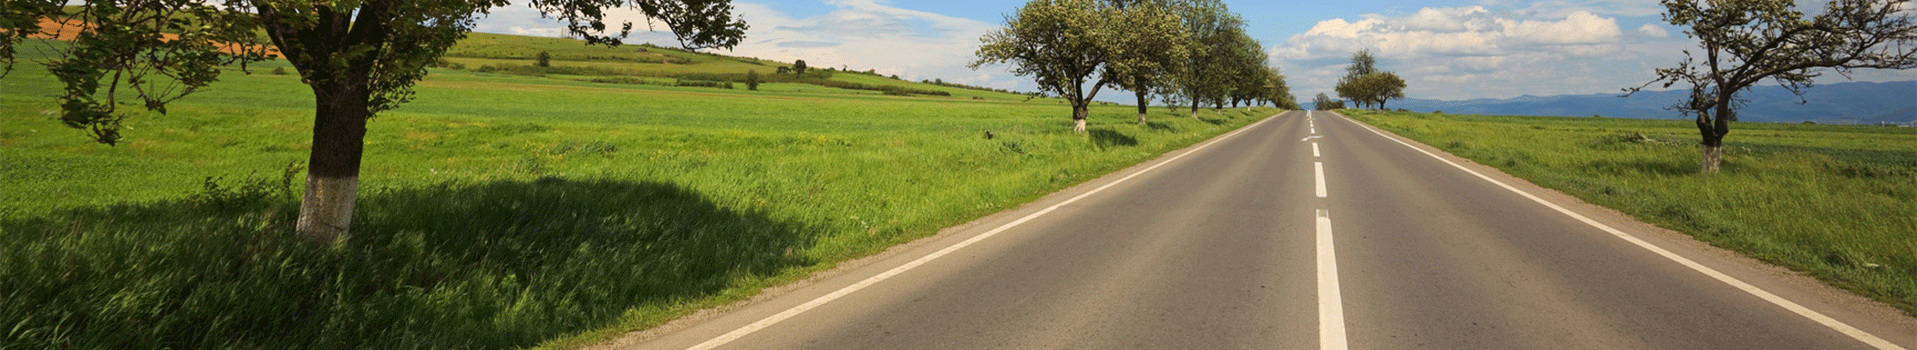 banner-country-road